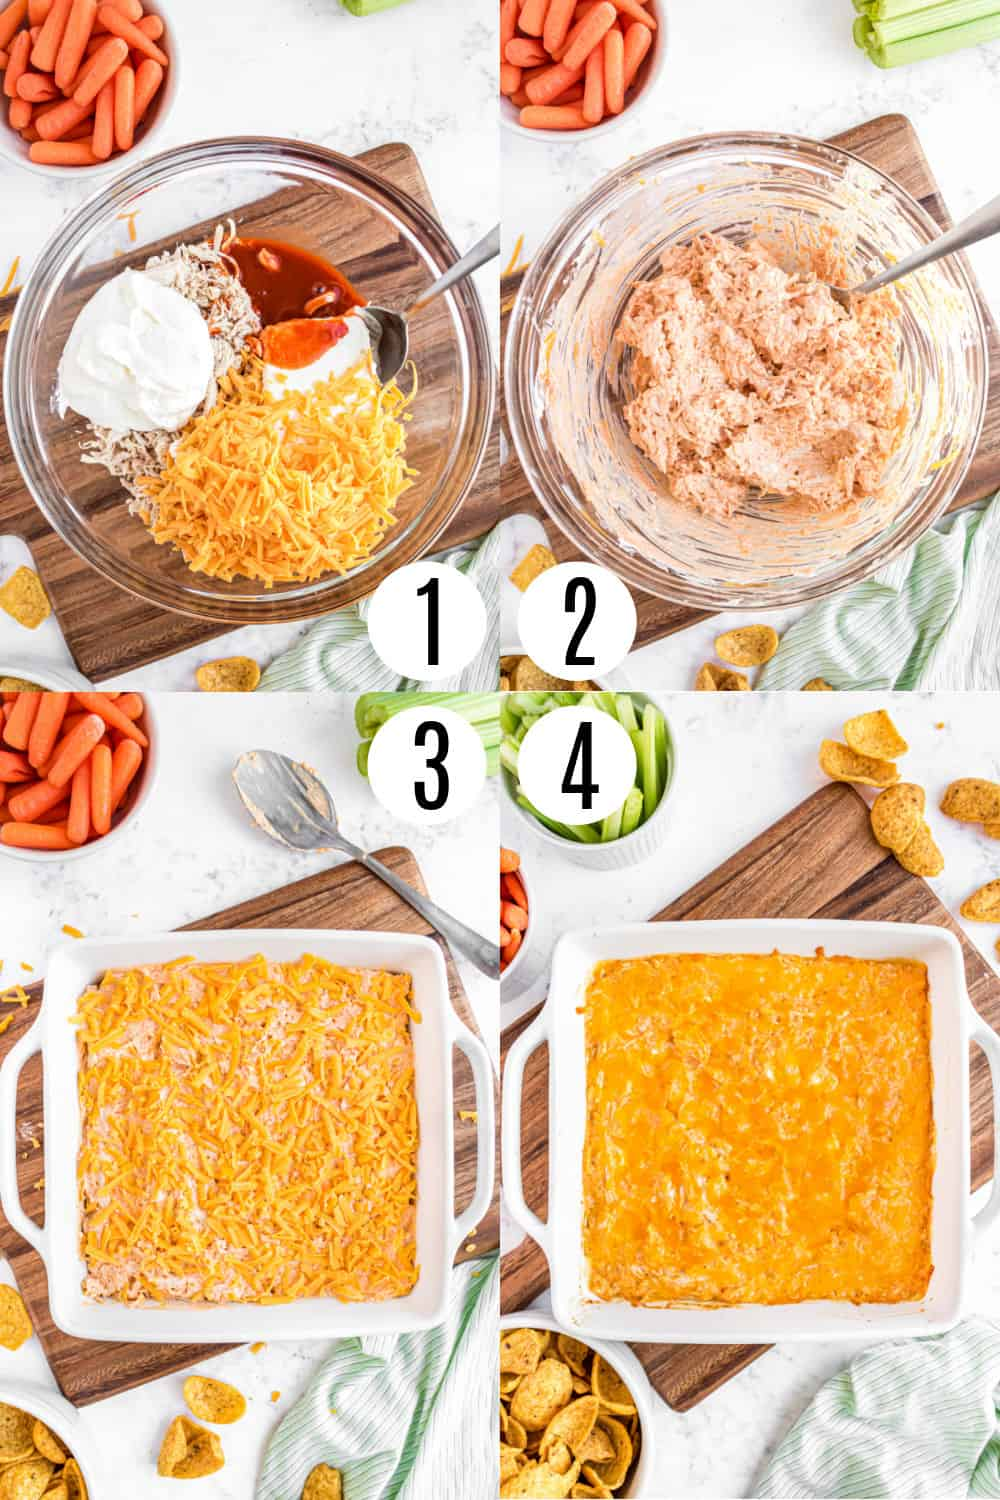 Step by step photos showing how to make buffalo chicken dip.